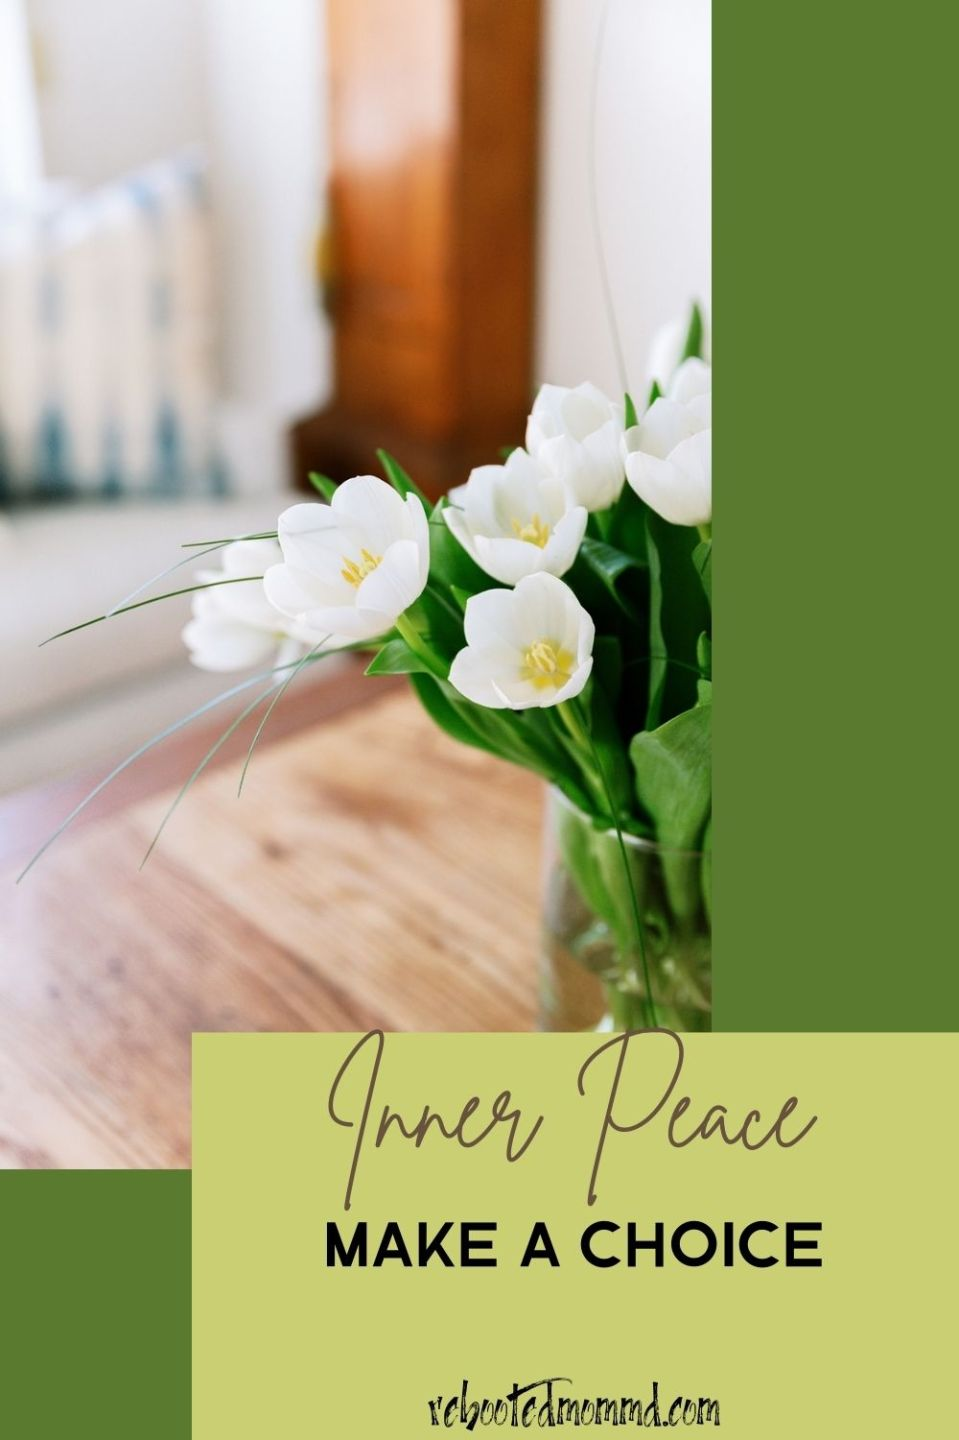 The Benefits of Choosing Inner Peace when Surrounded by Chaos